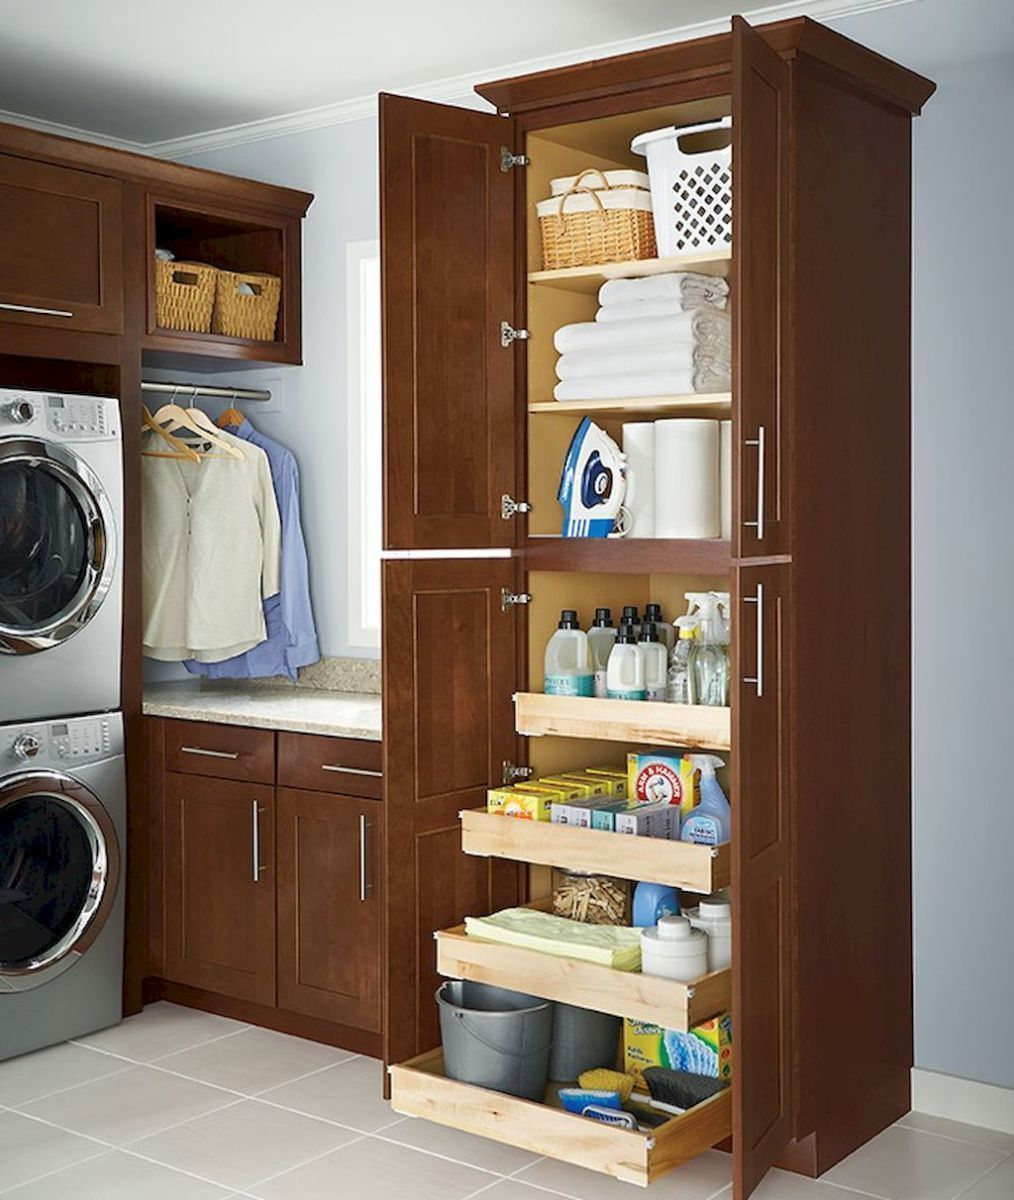 Diy Laundry Room Storage Shelves Ideas 71 With Images Diy